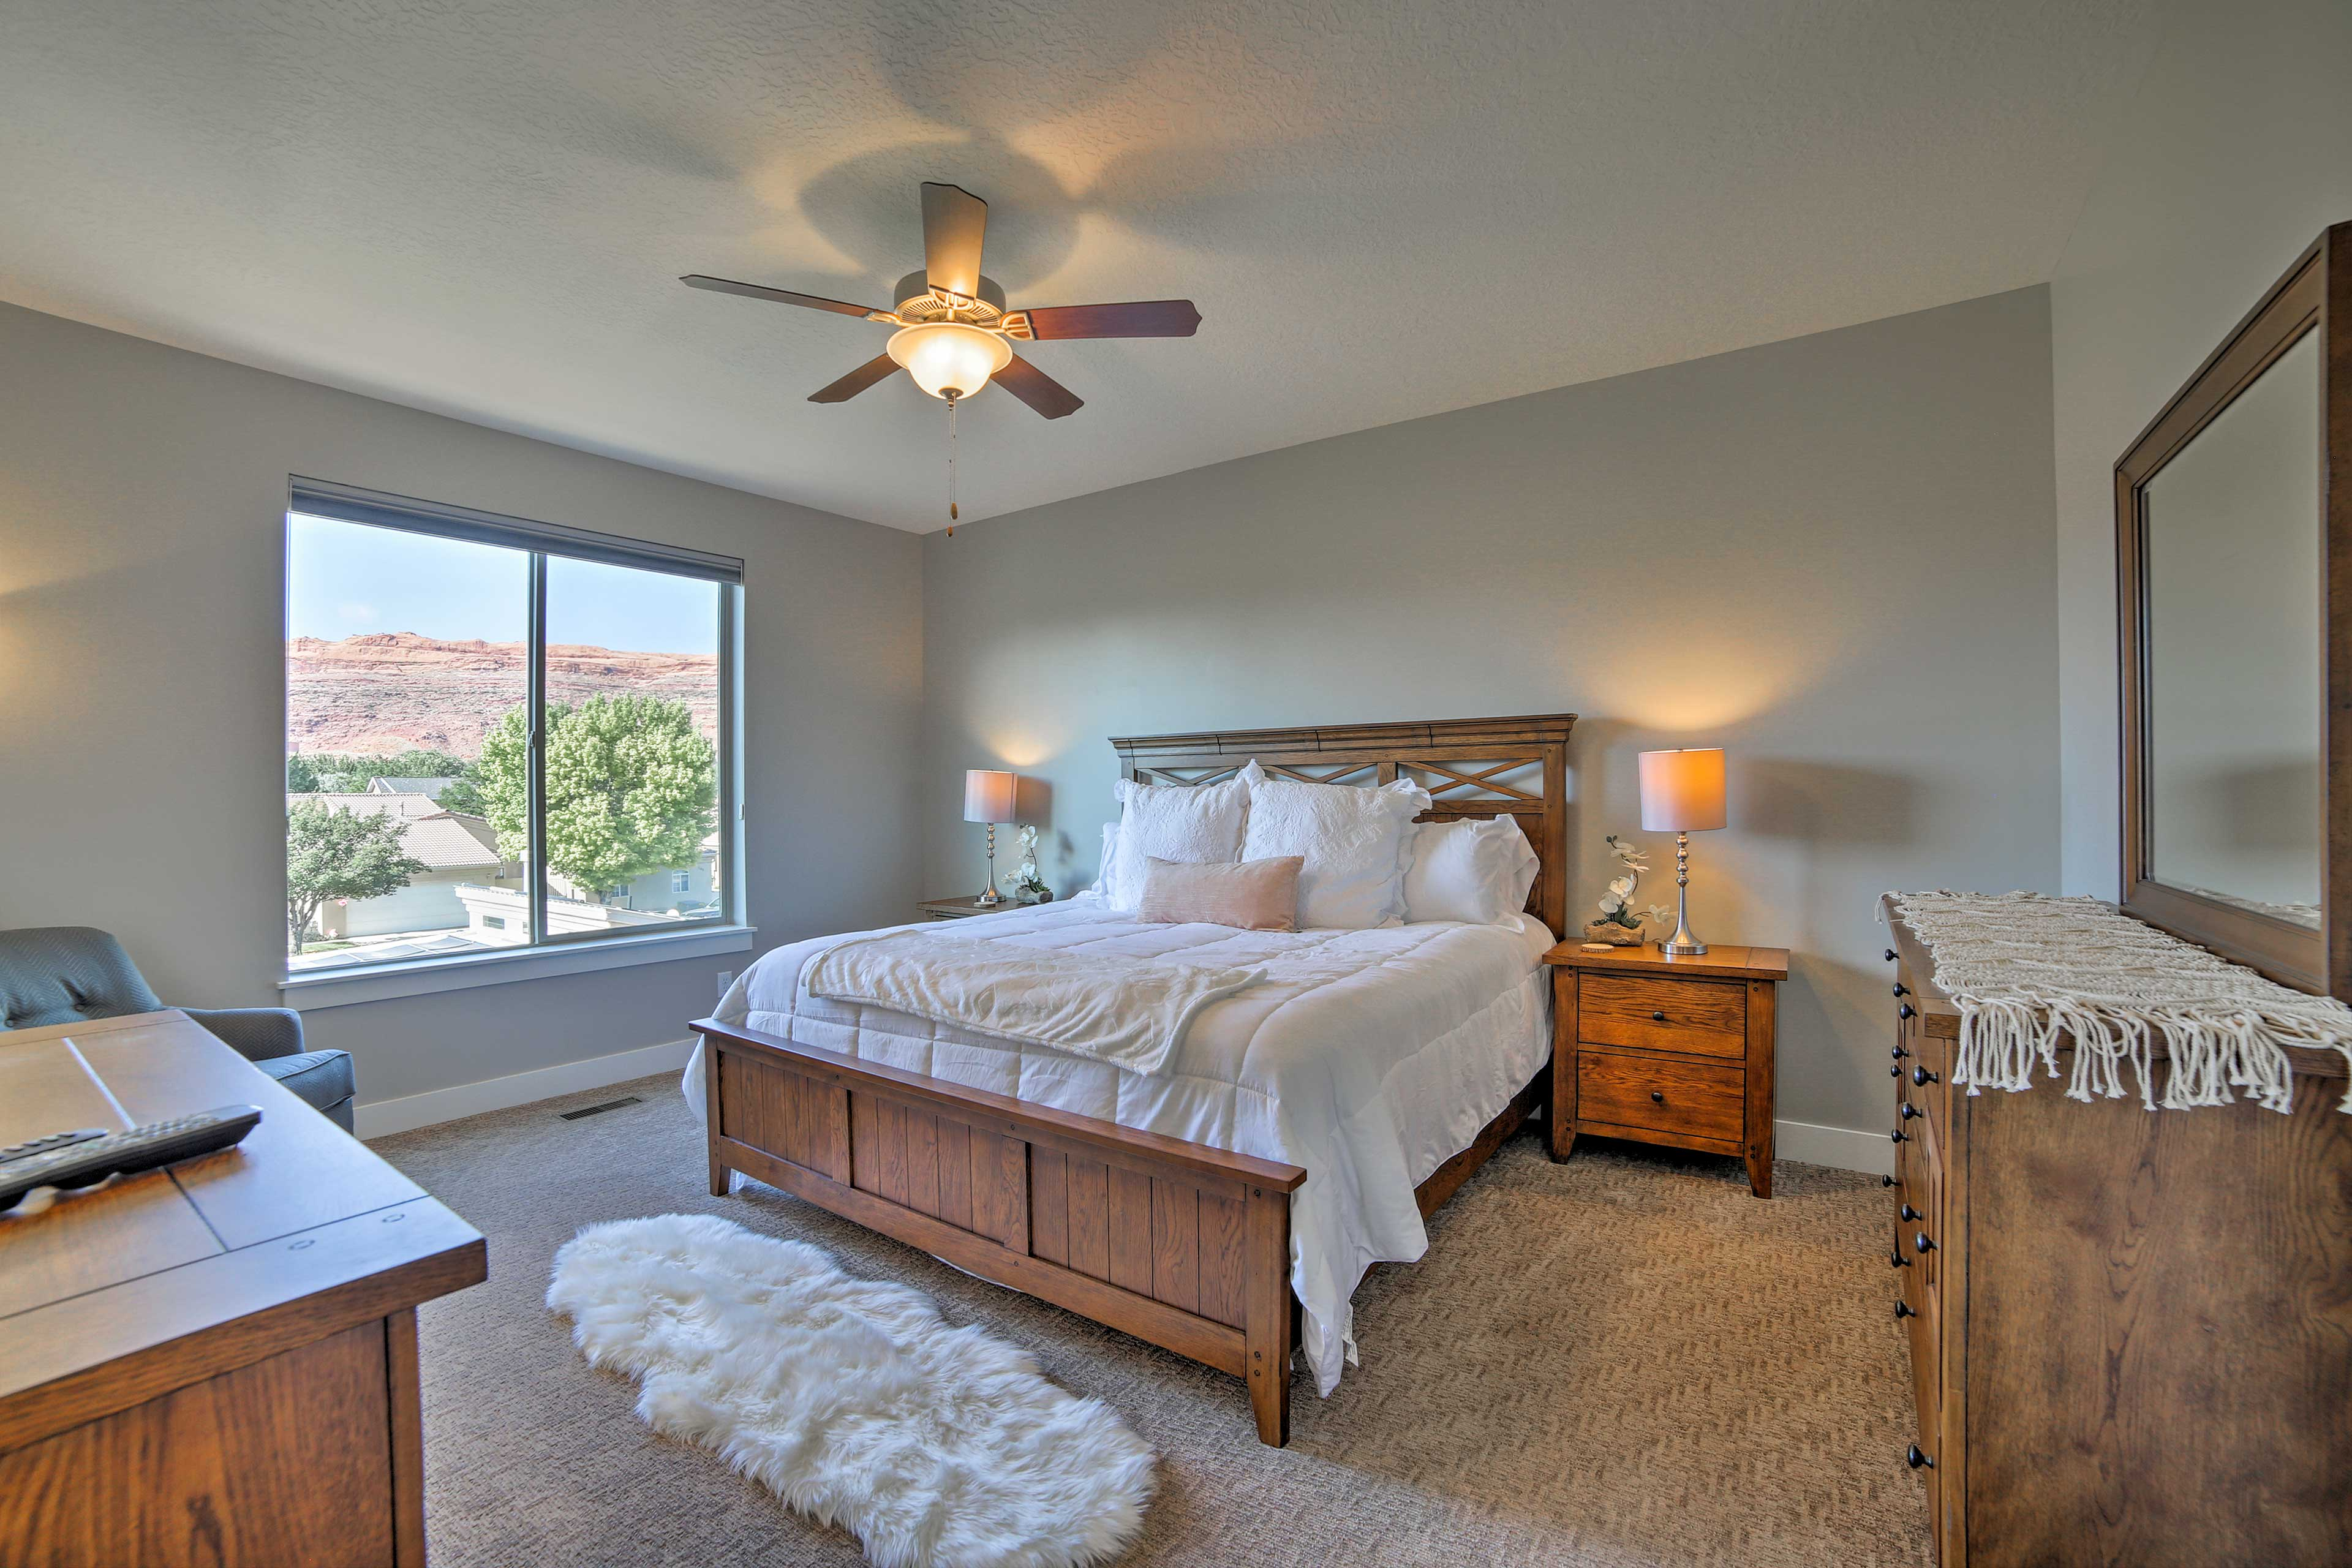 This master bedroom is a private oasis.